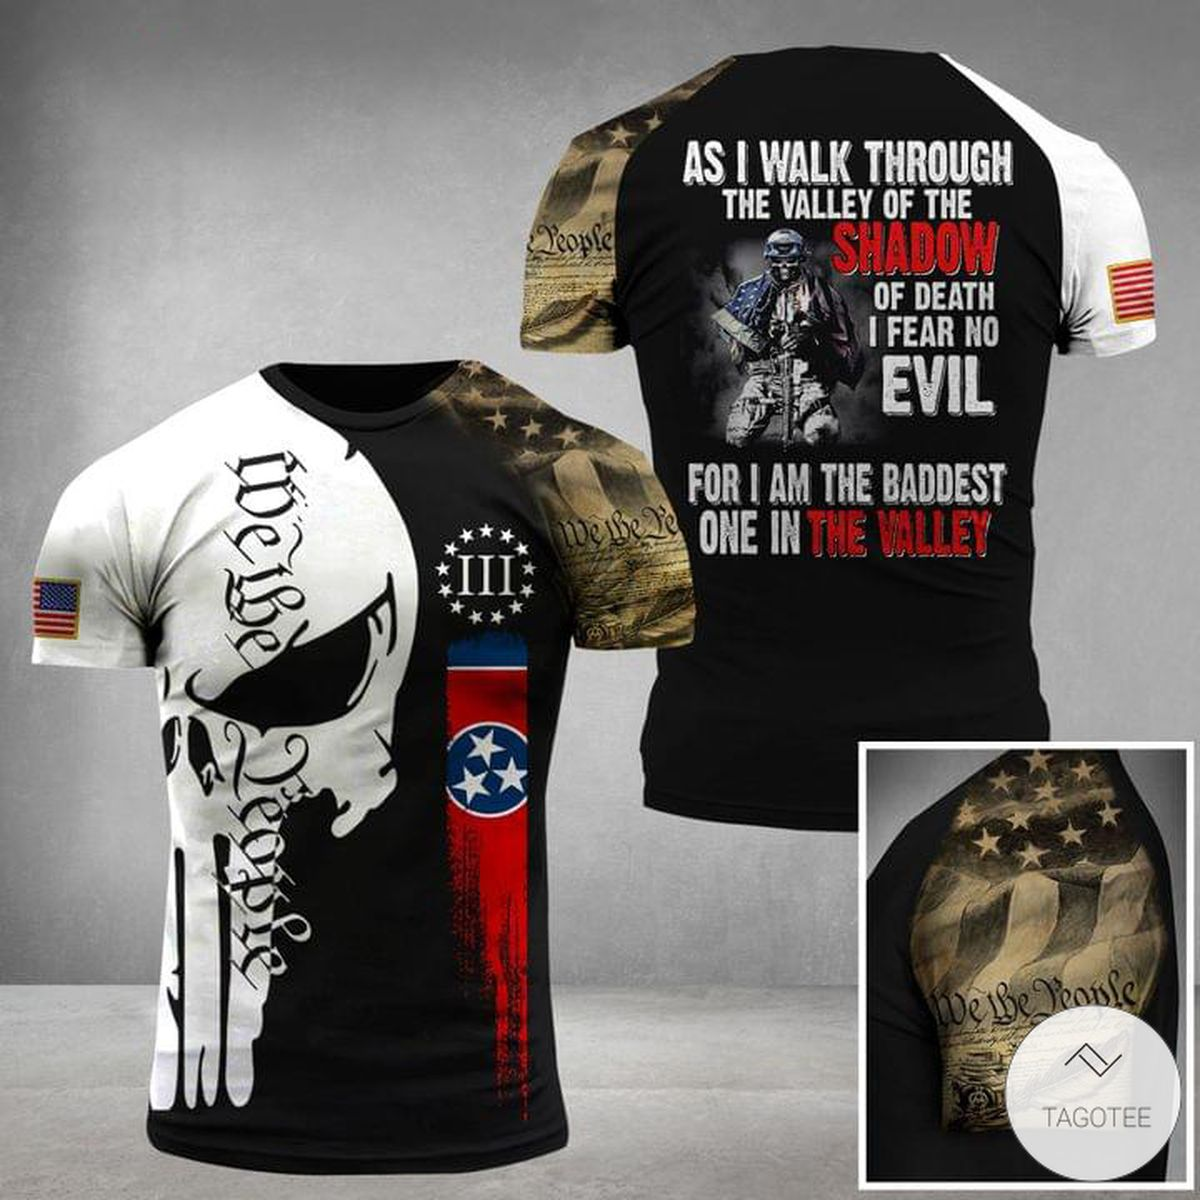 As I Walk Through The Valley Of The Shadow Of Death I Fear No Evil For I Am The Baddest Of In The Valley Skull Military 3D T-shirt